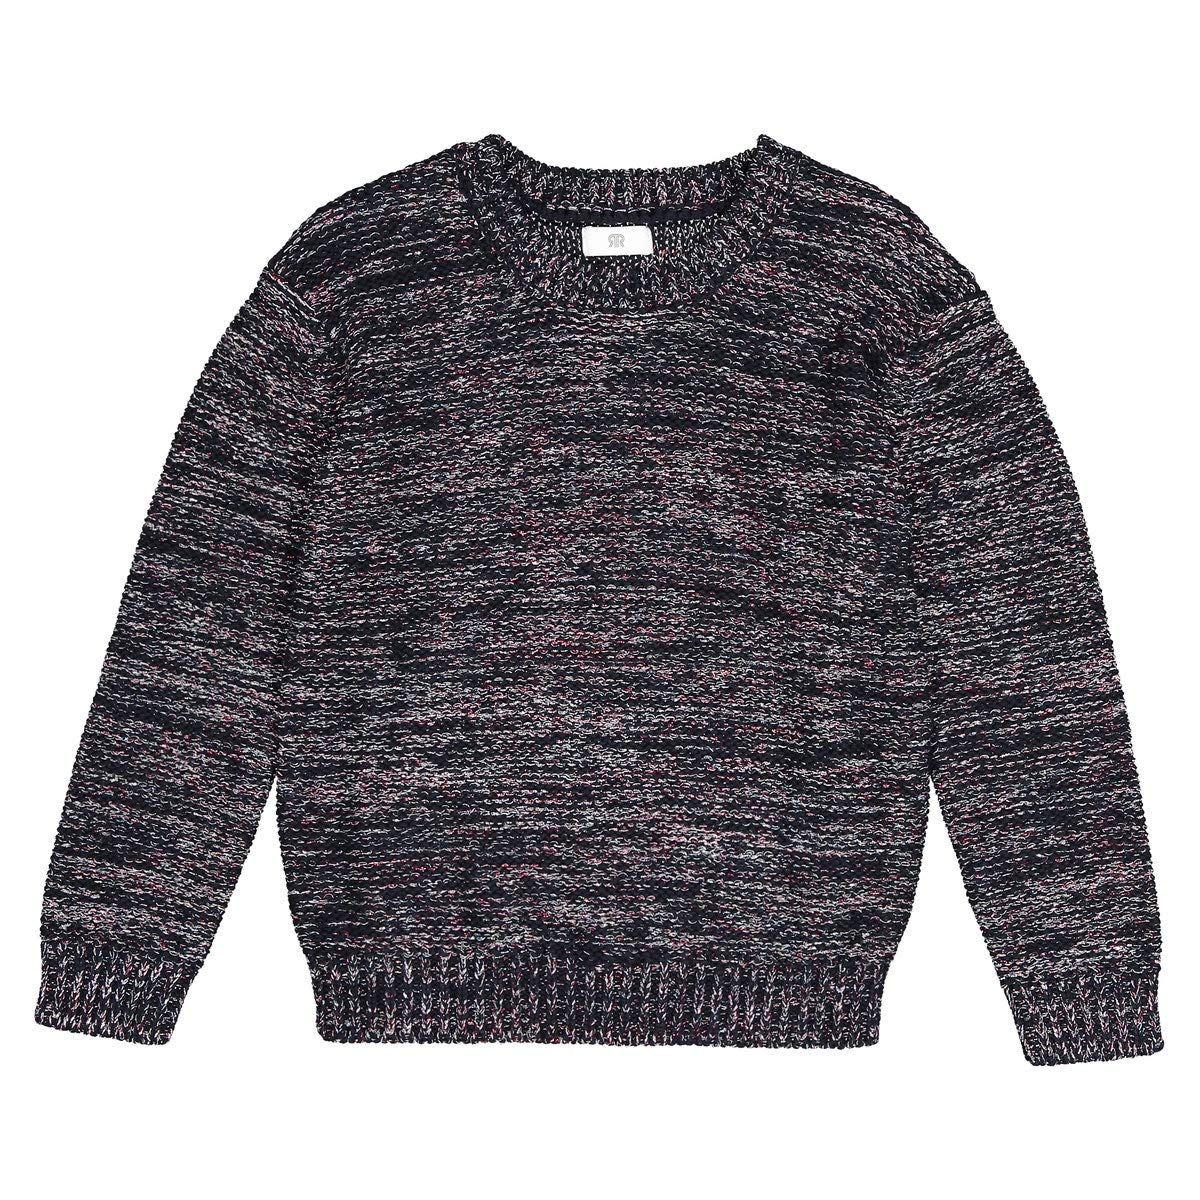 3-12 Years La Redoute Uniross Glitter Knit Jumper//Sweater